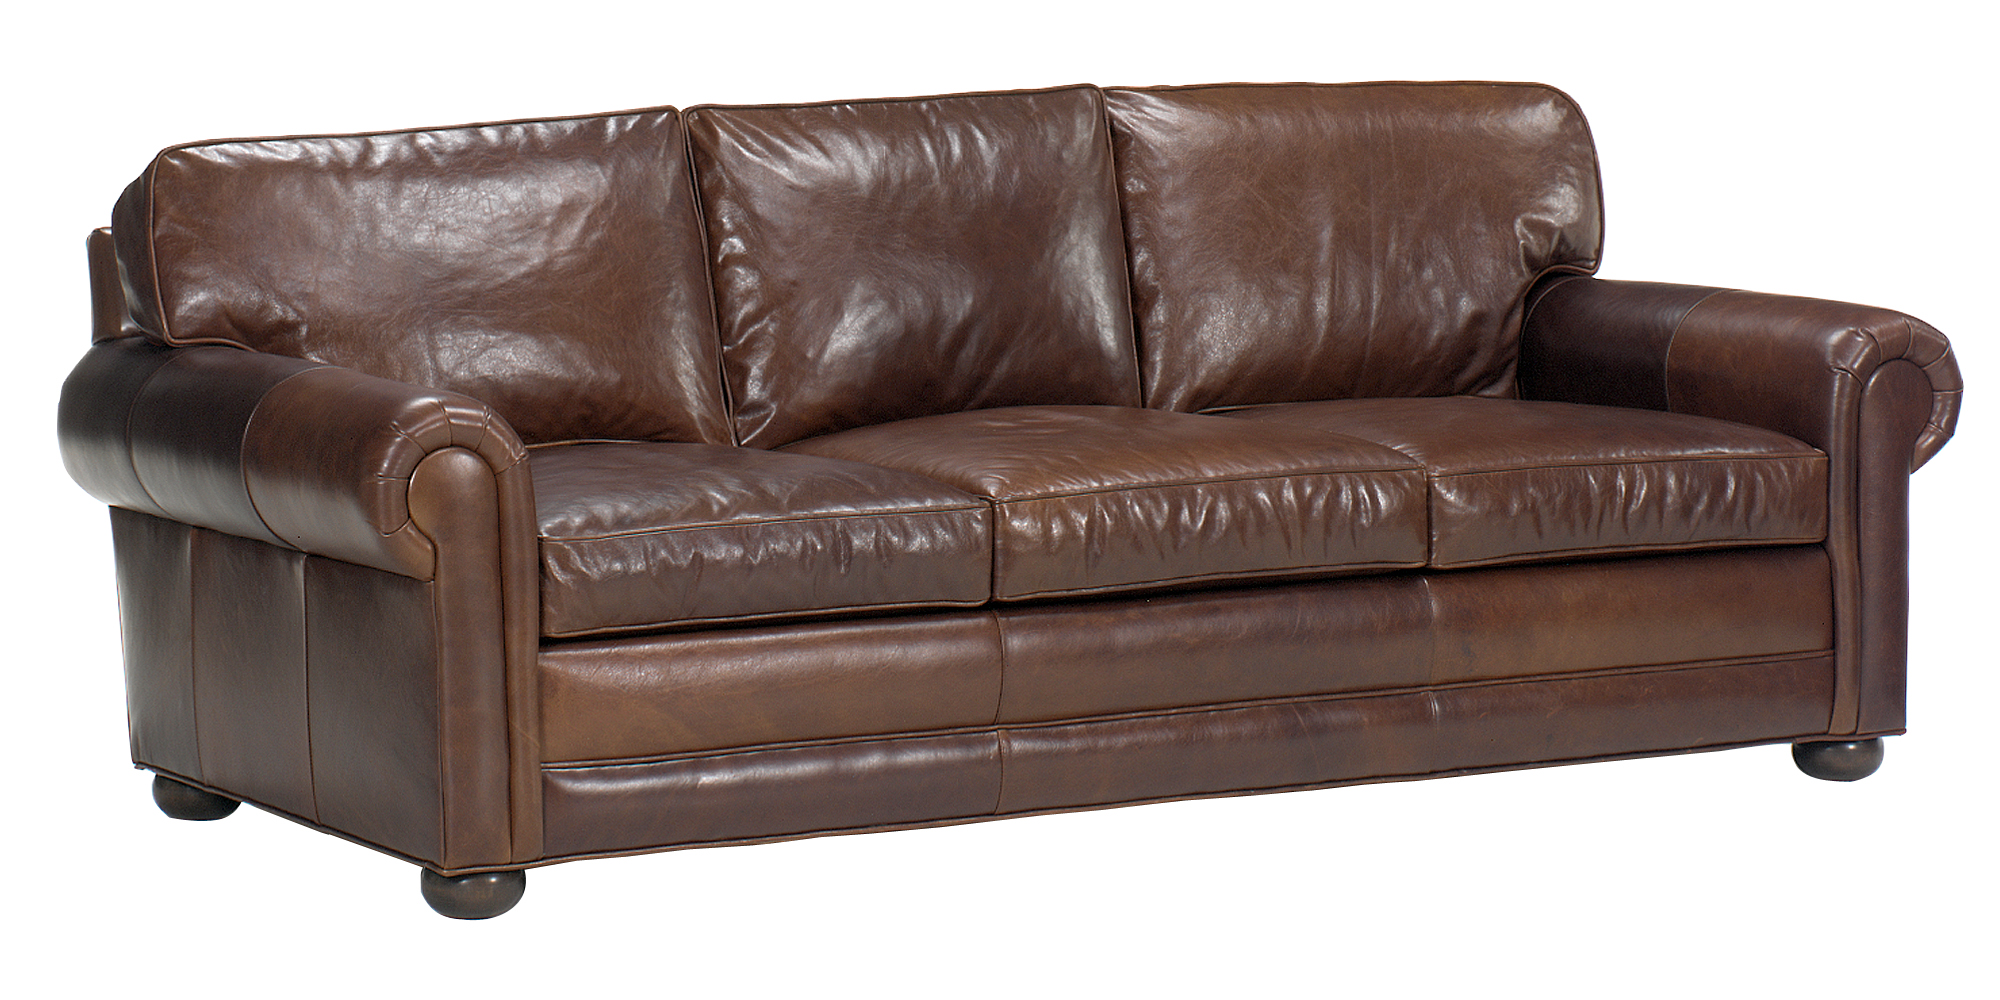 Oversized large deep seated leather furniture club furniture for Leather furniture